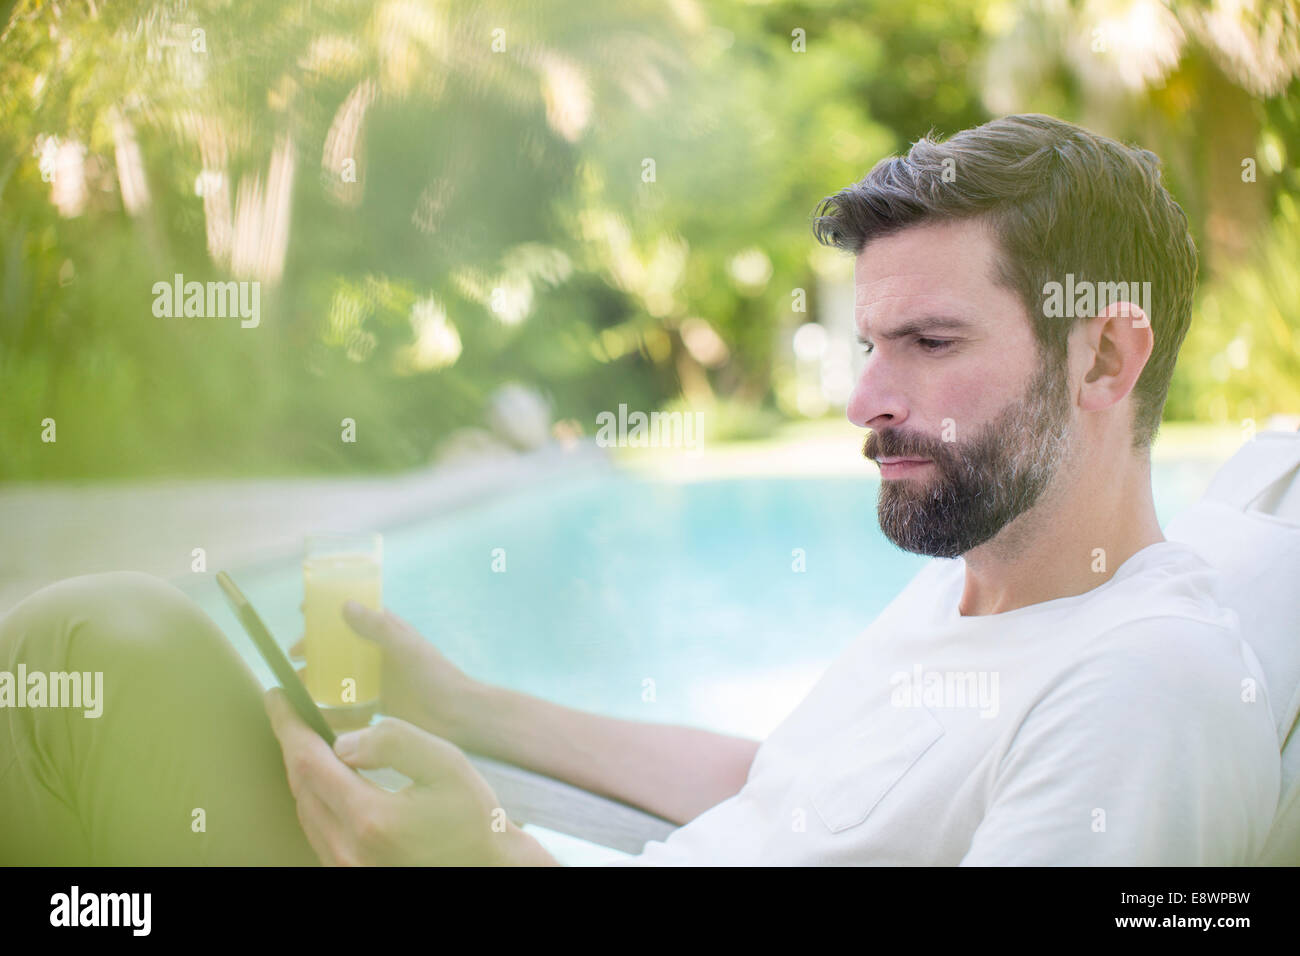 Man using digital tablet and drinking juice by swimming pool - Stock Image